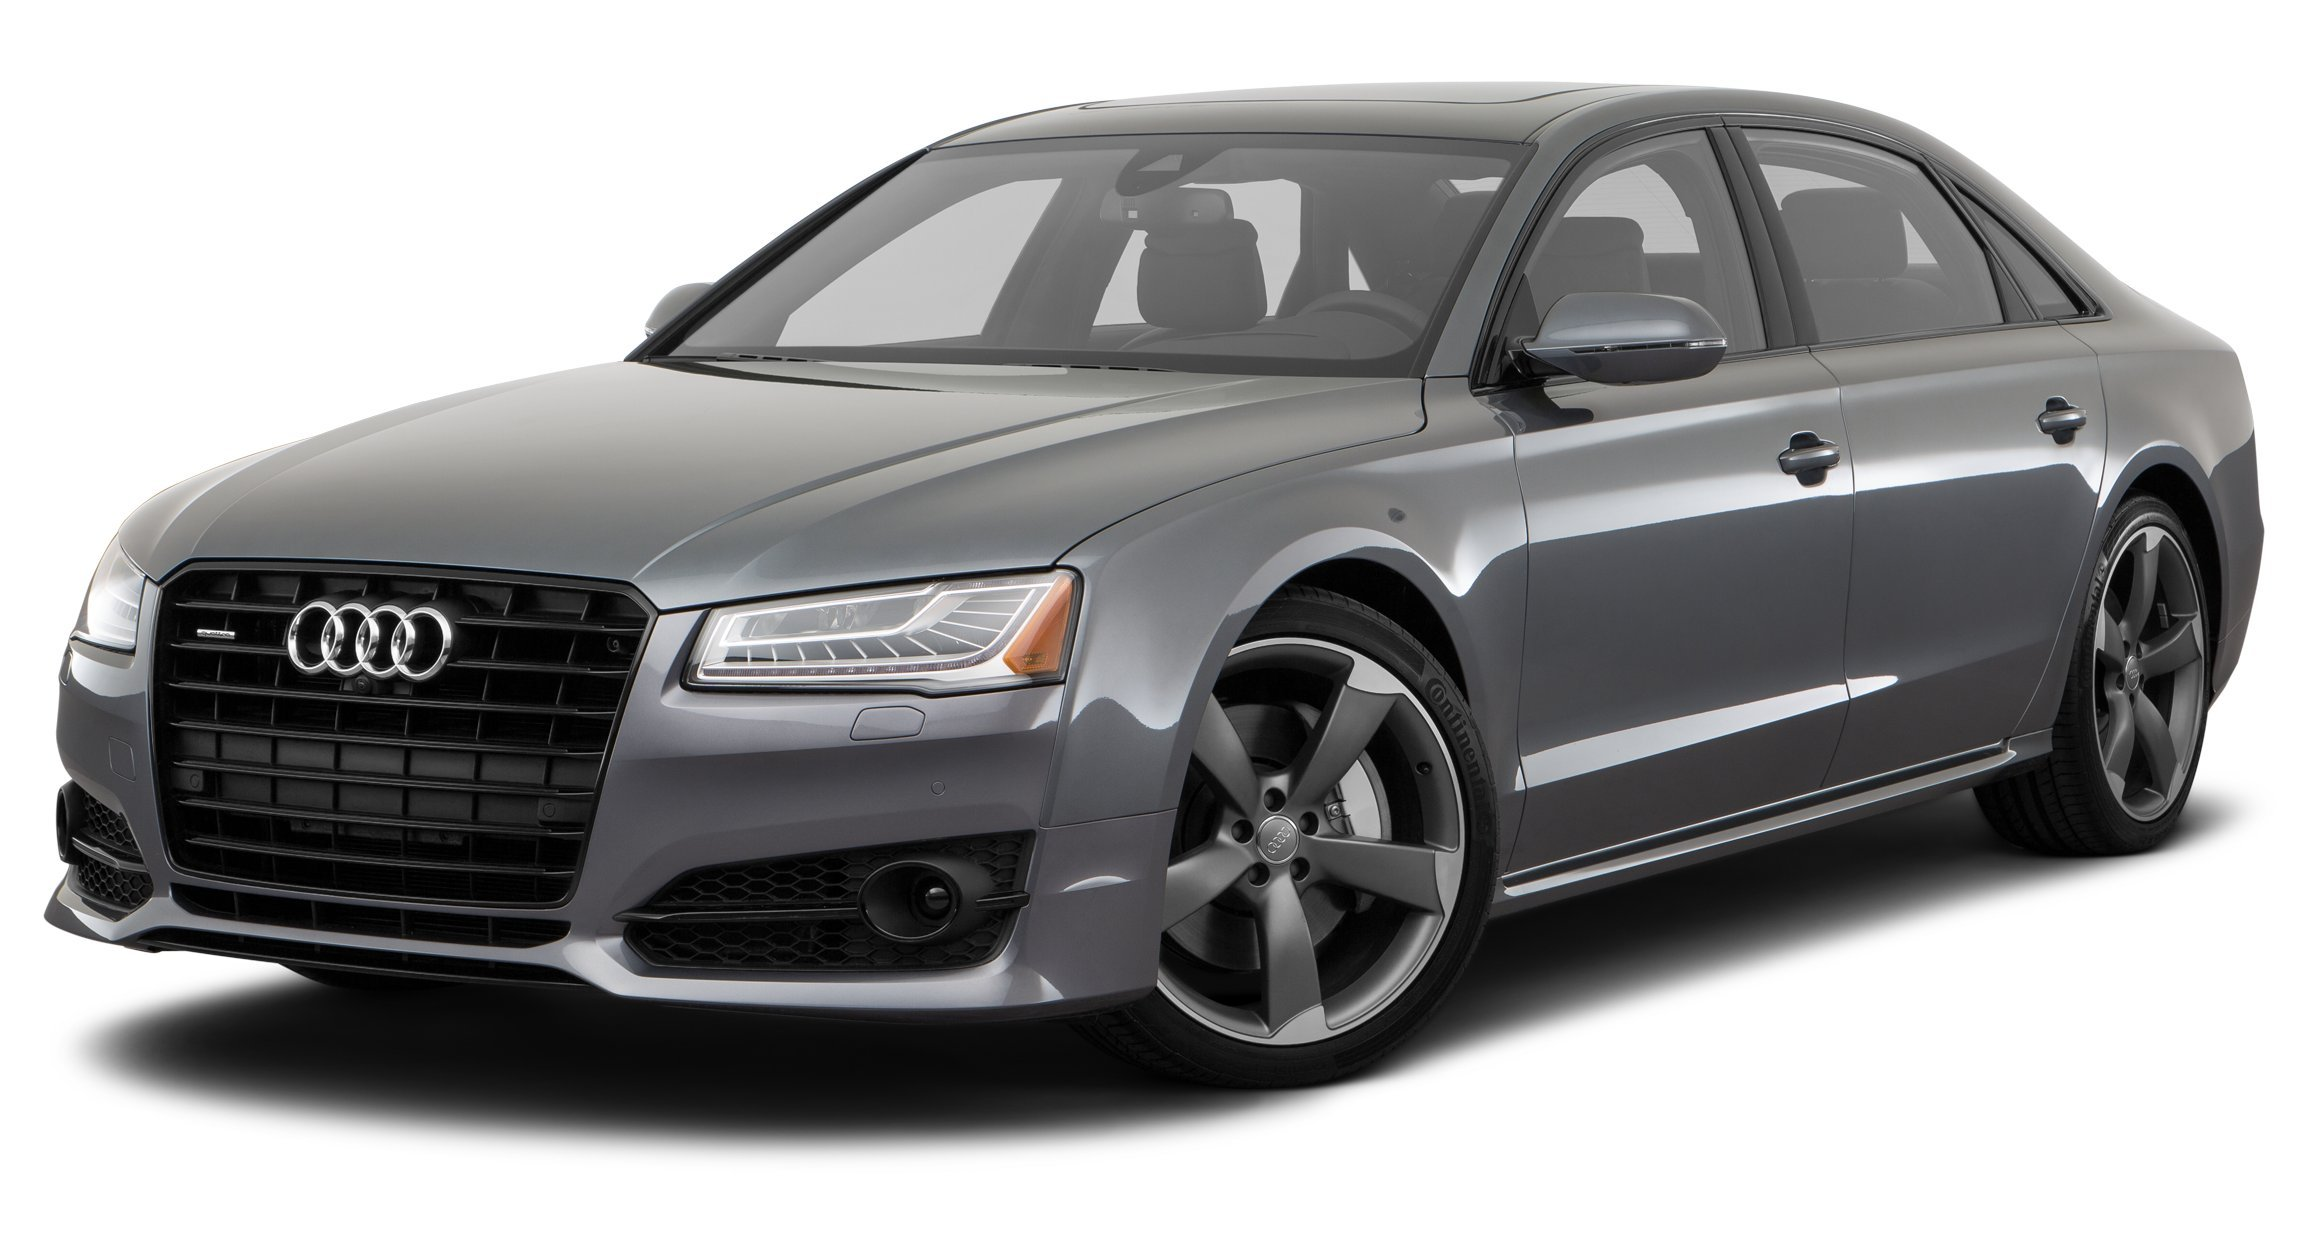 2017 audi a8 quattro reviews images and specs vehicles